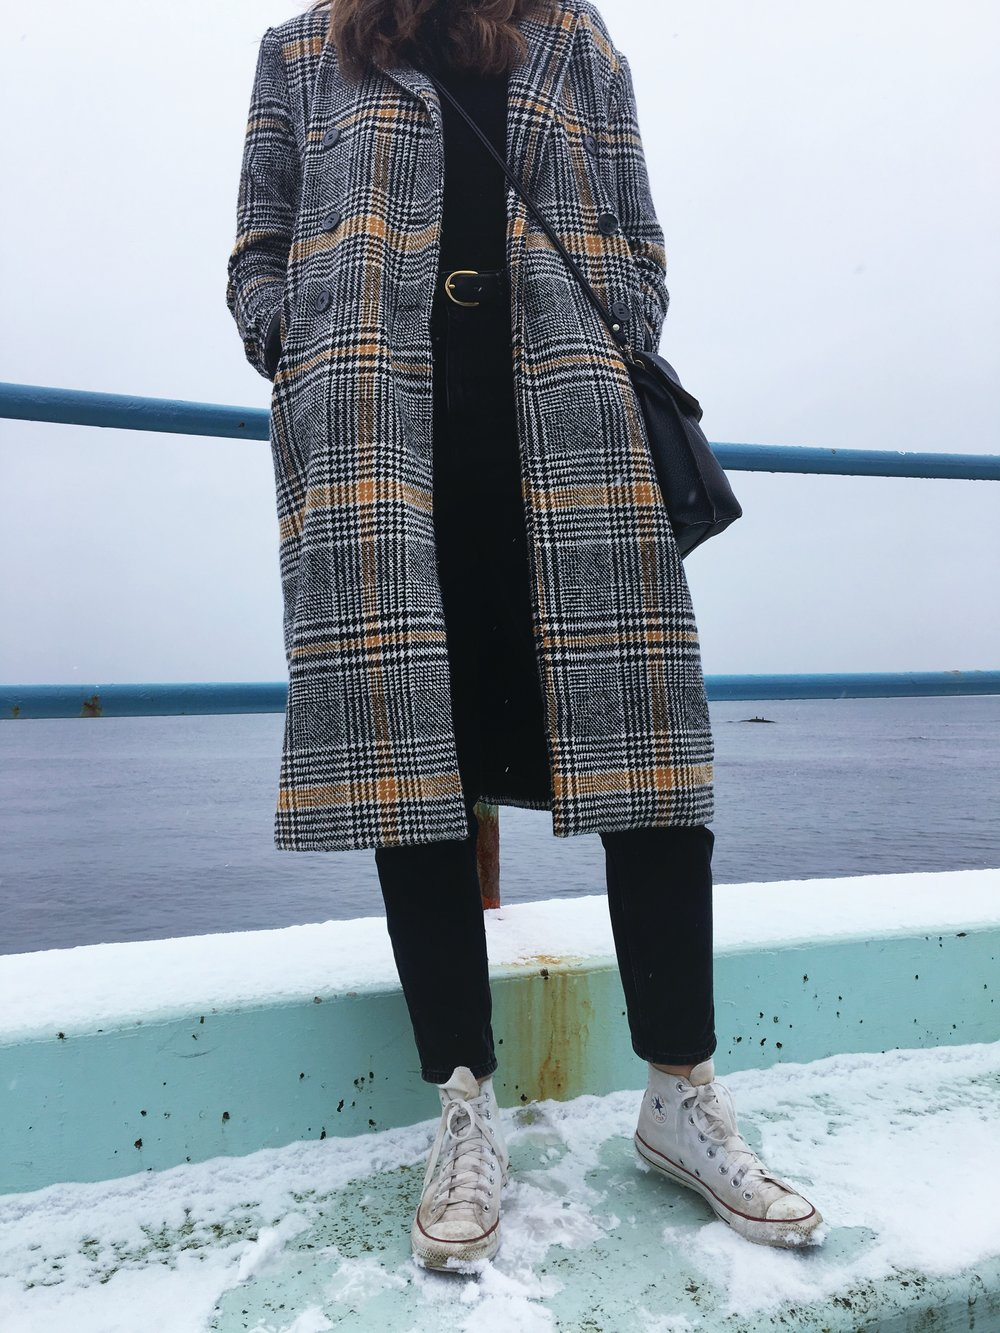 a woman wearing a baker boy cap and a plaid coat standing on a blue bench in front of the ocean The States of Georgia lifestyle blog Canadian lifestyle blog writing blog Why I Gave Up Trying to be Chill